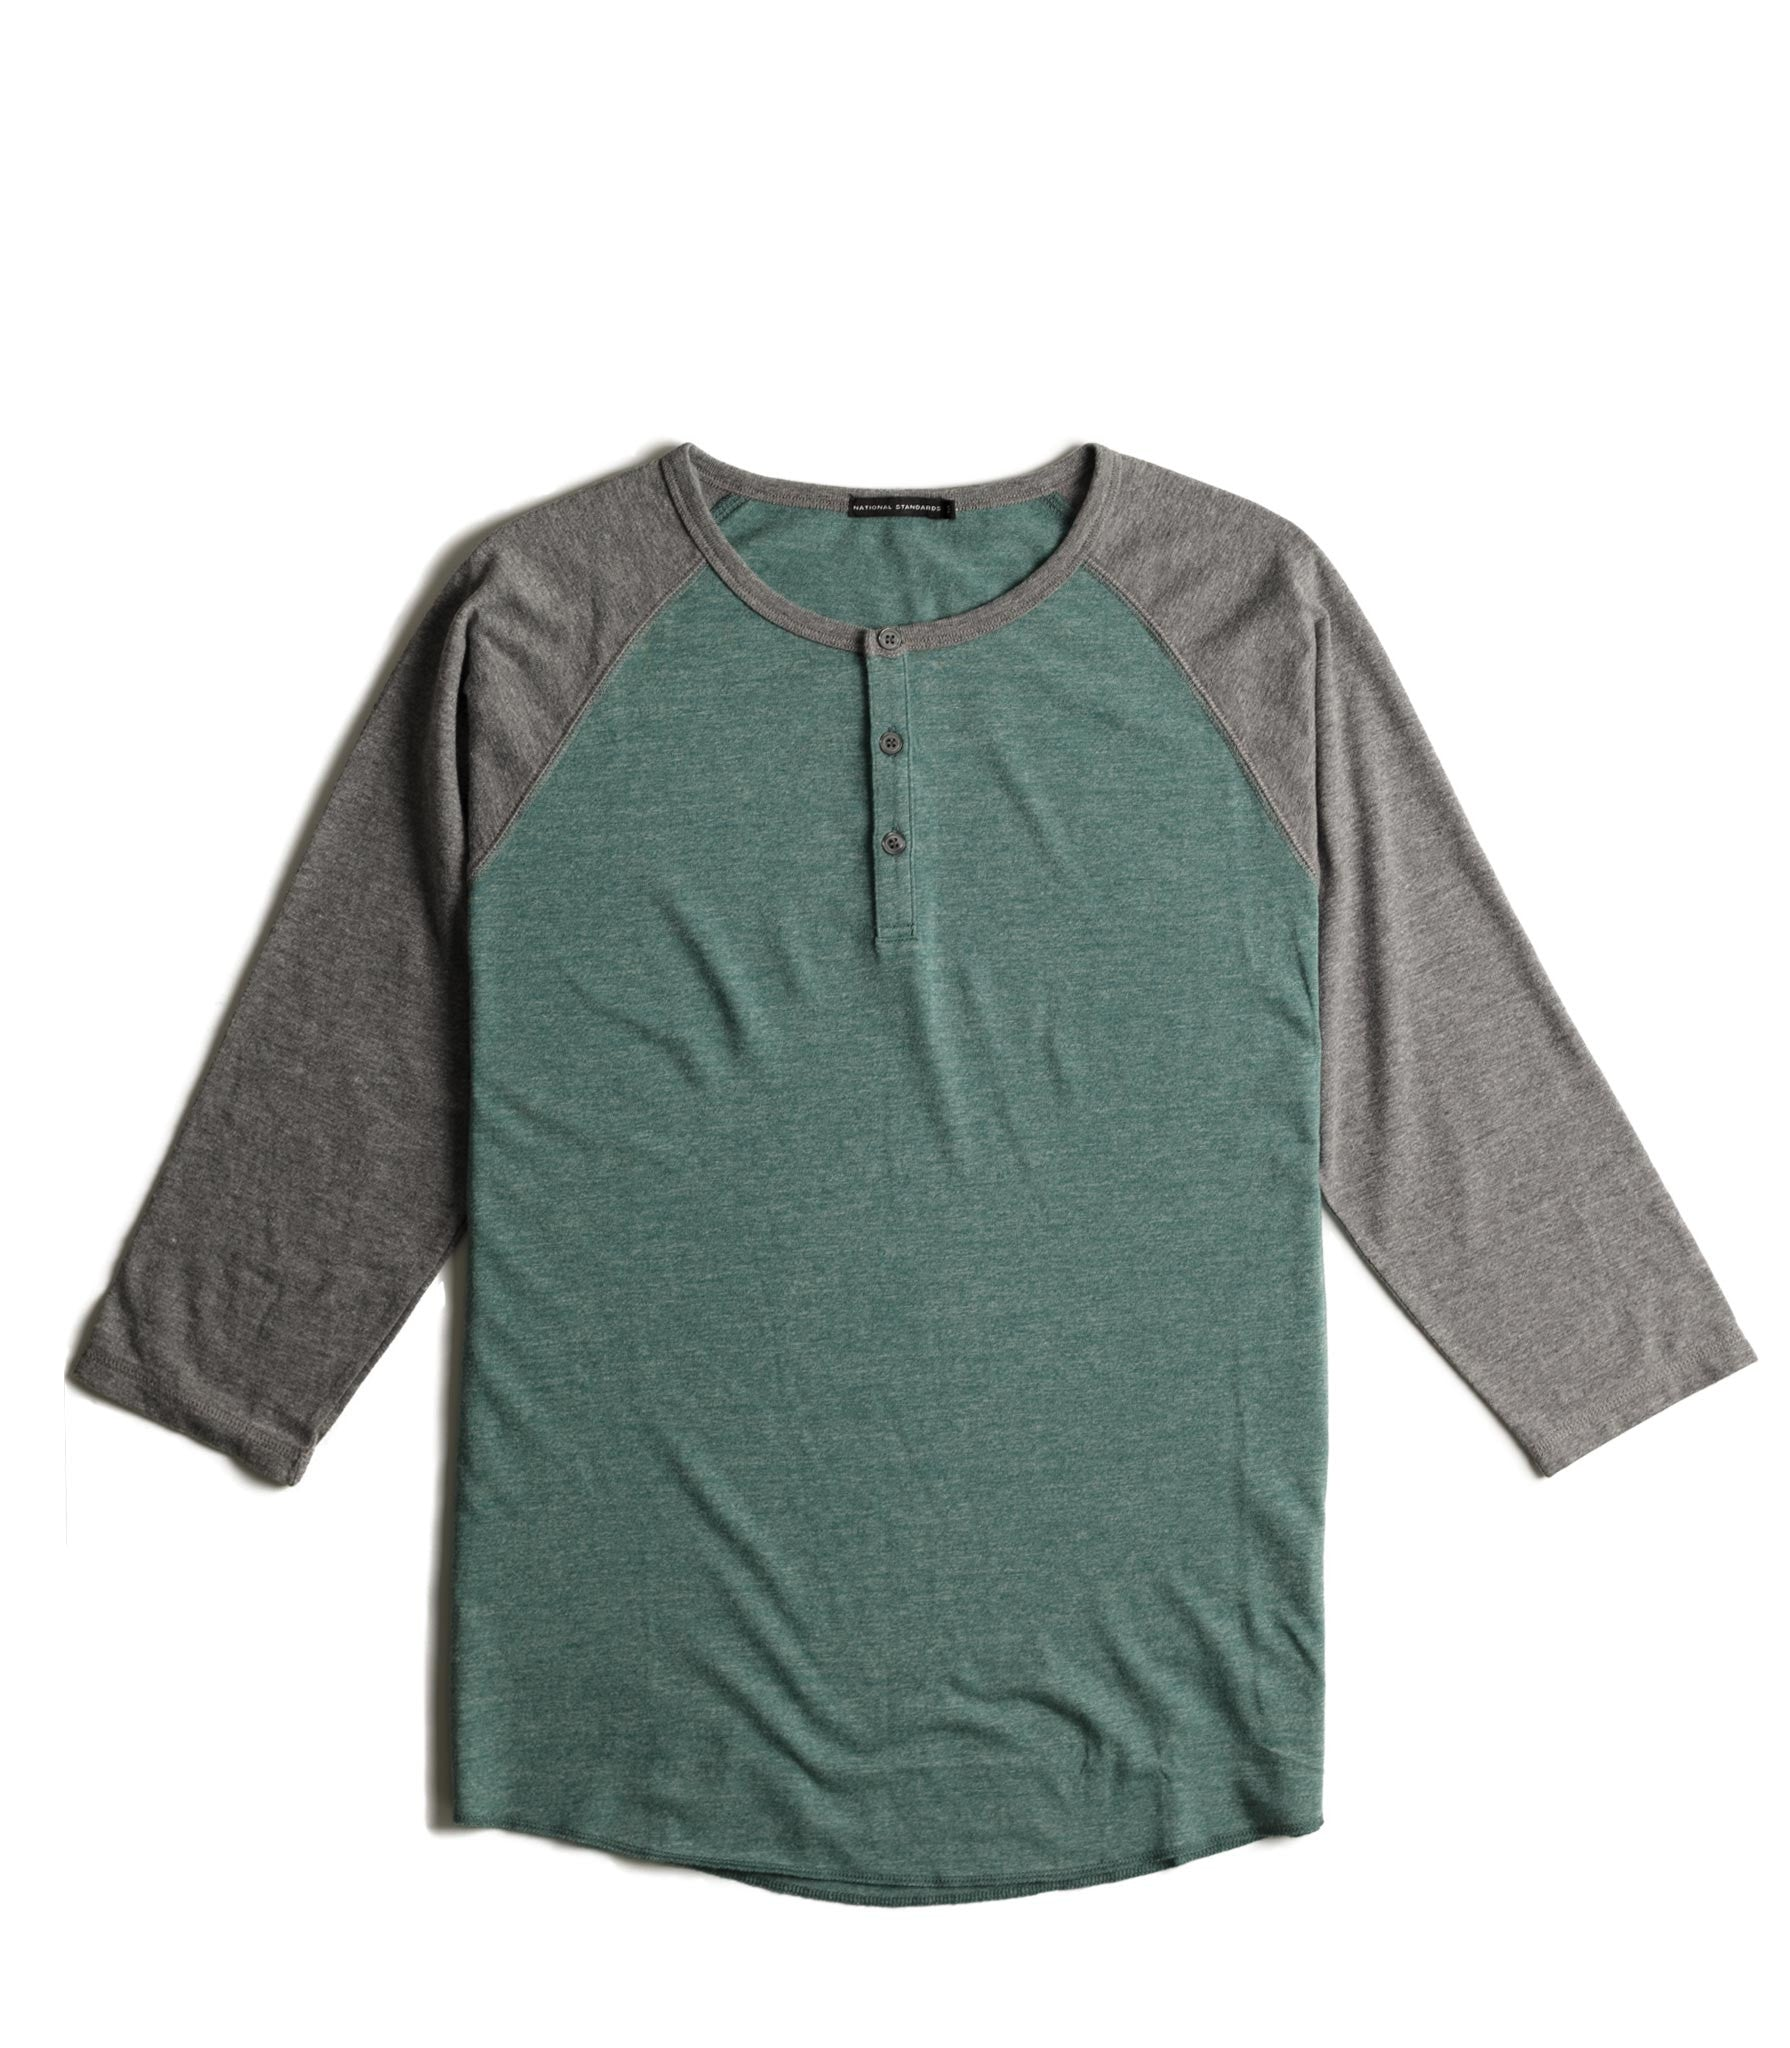 Tri-blend 3/4 henley in Green